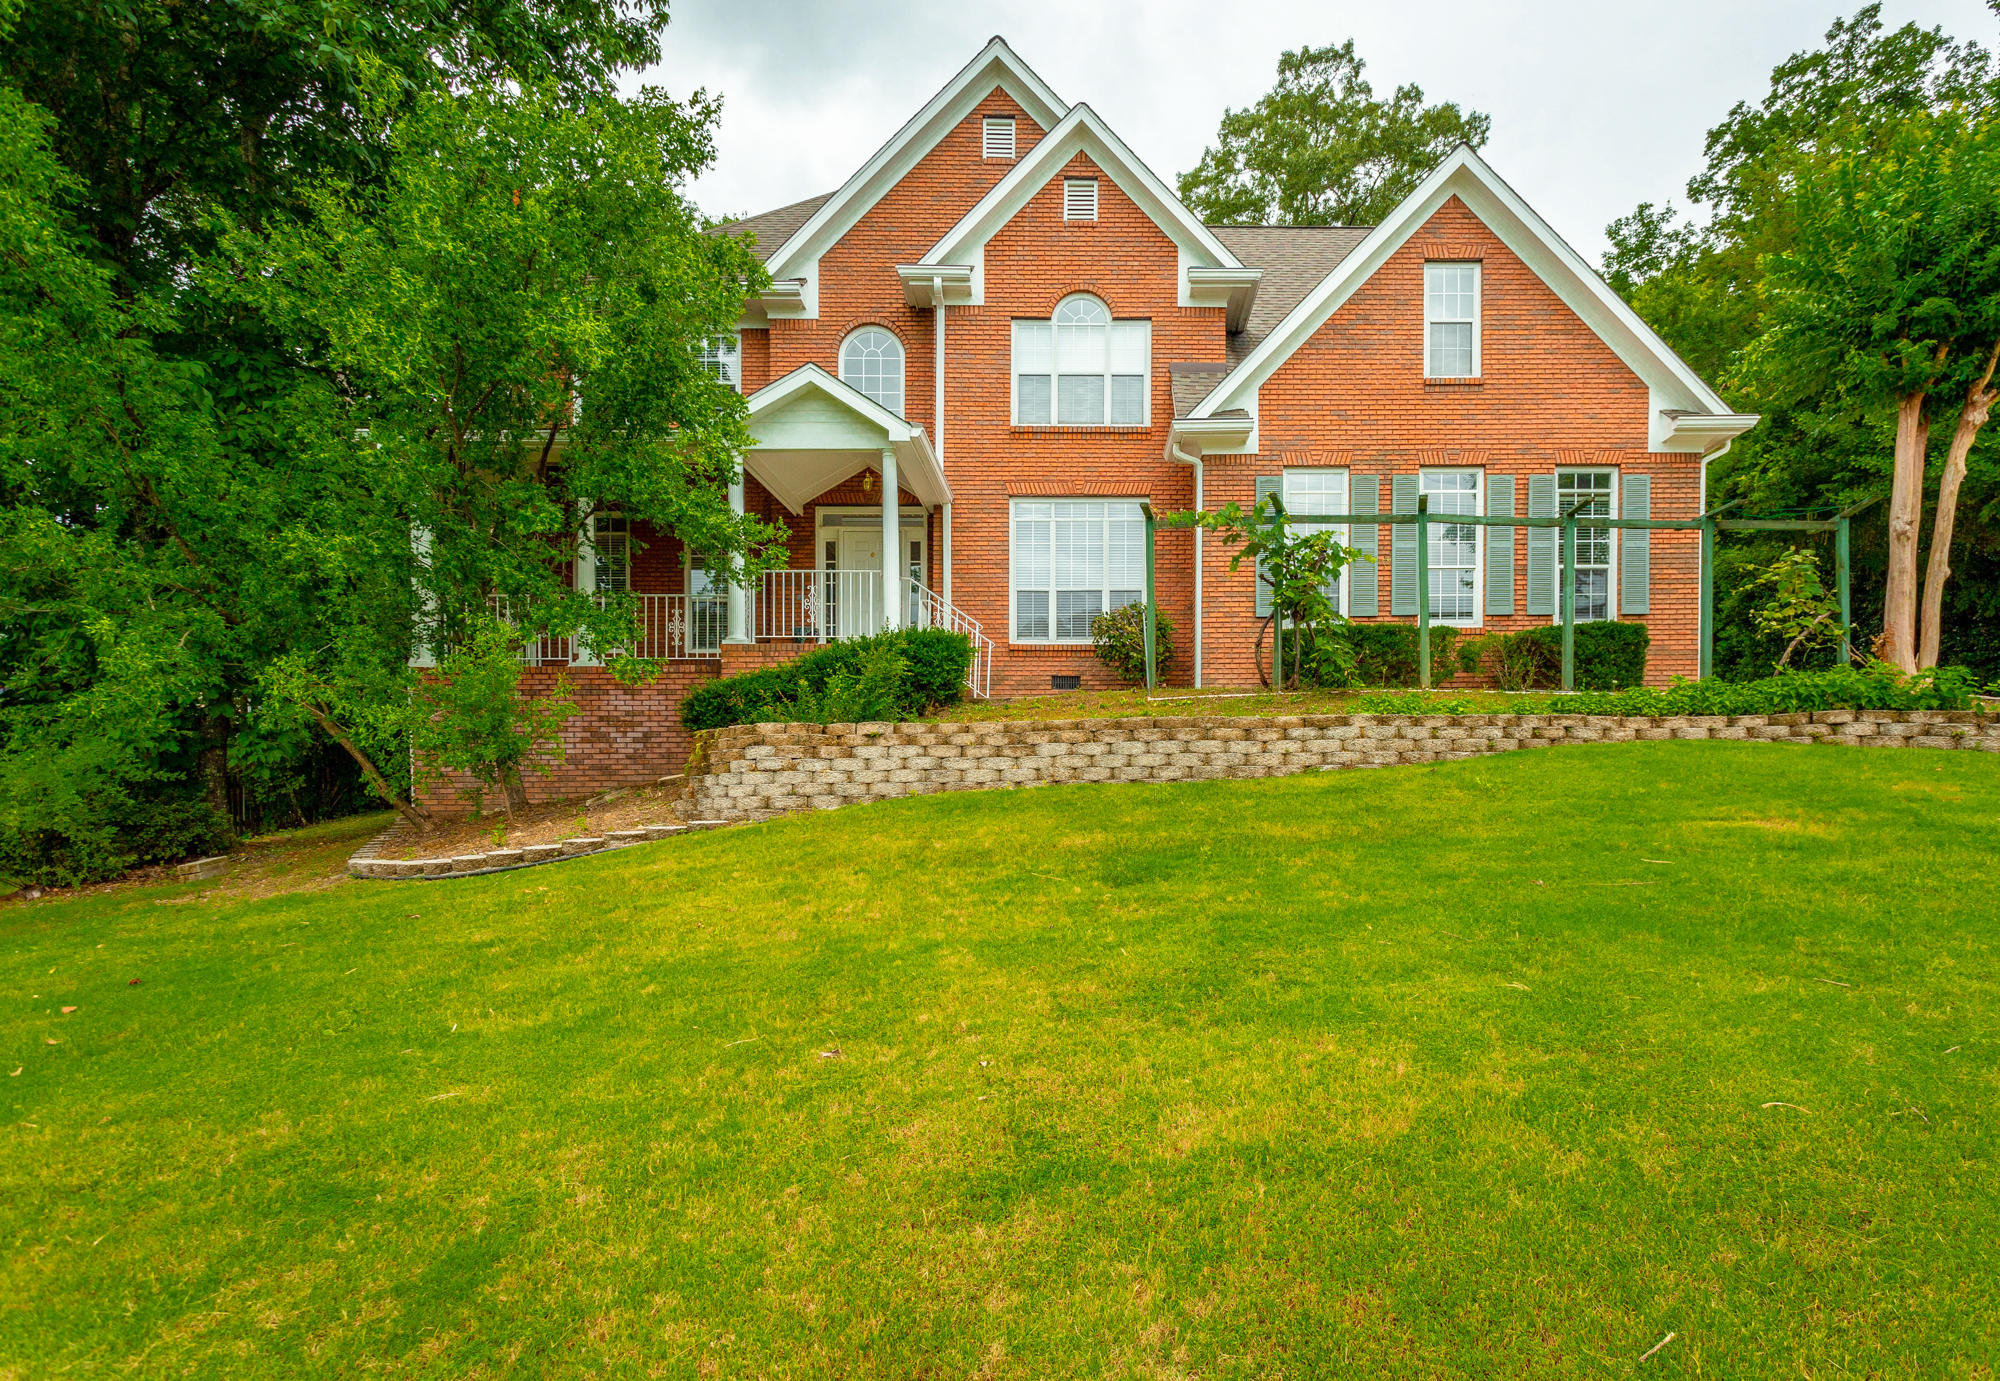 9431 Lazy Circles Dr, Ooltewah, TN 37363